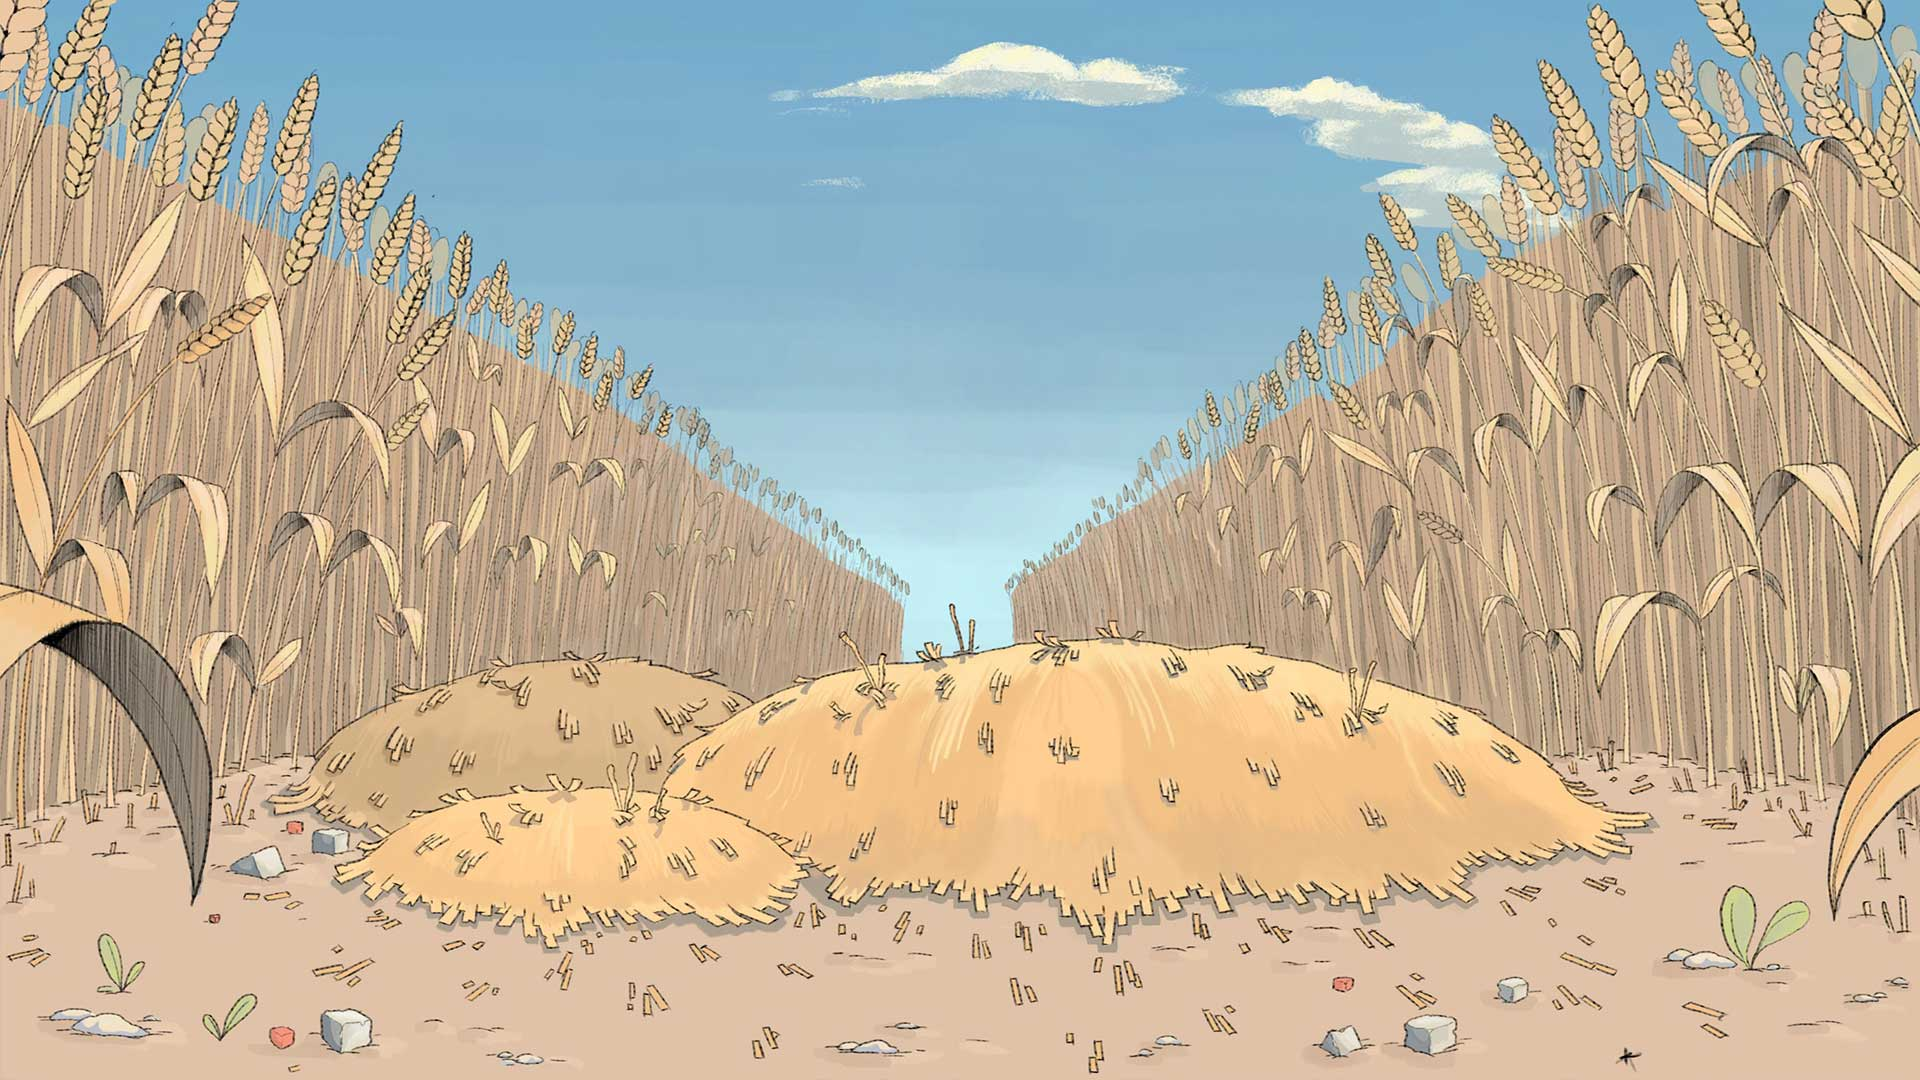 illustration of a field of wheat on a sunny day